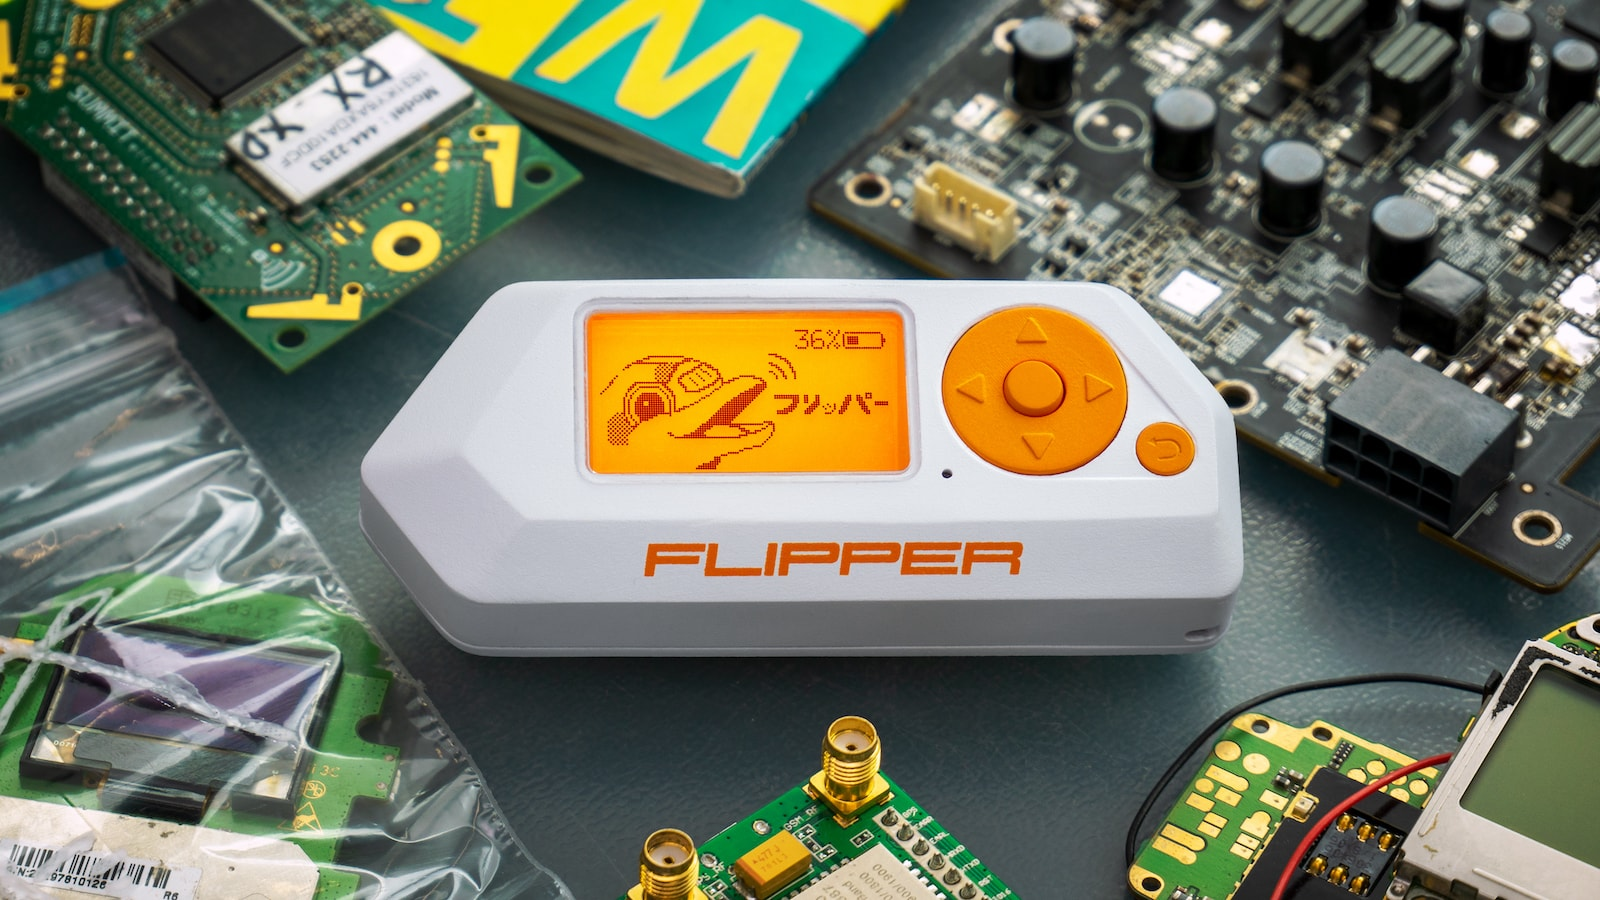 Flipper Zero hacking gadget is an open-source multitool for pentesting and more